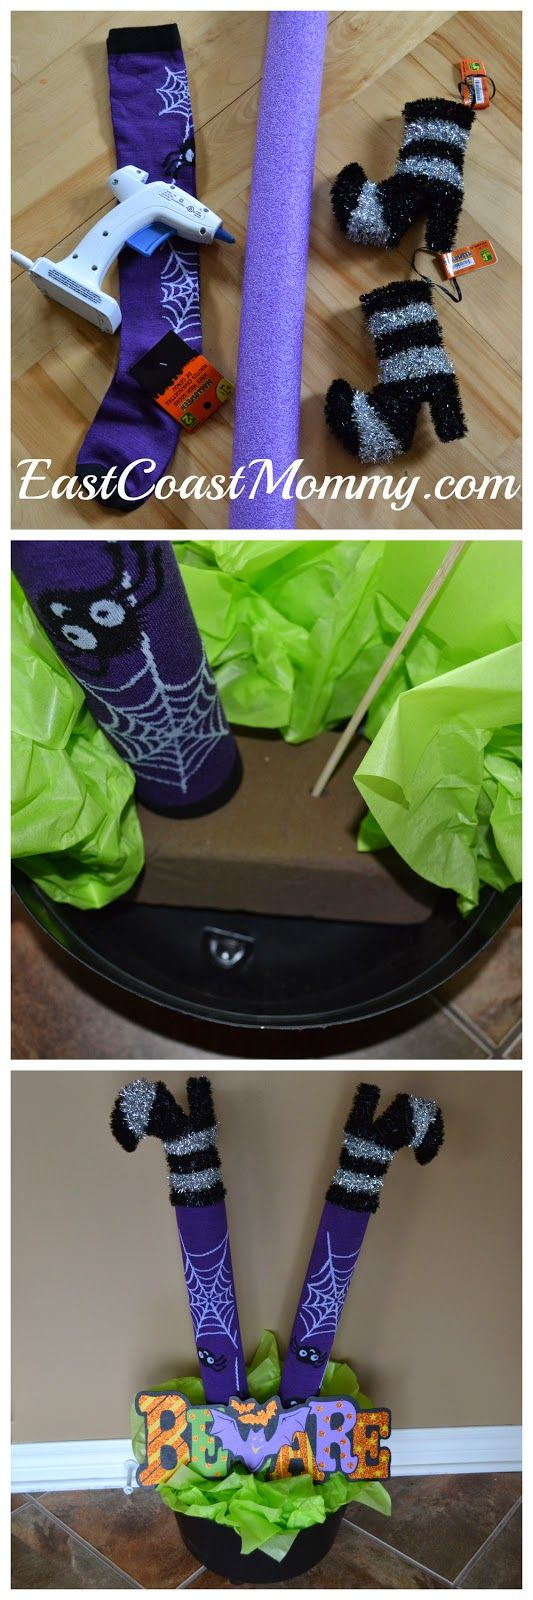 If you read my blog on a regular basis, you know that I love DIY crafts using supplies from the dollar store, and Halloween is the perfect t...